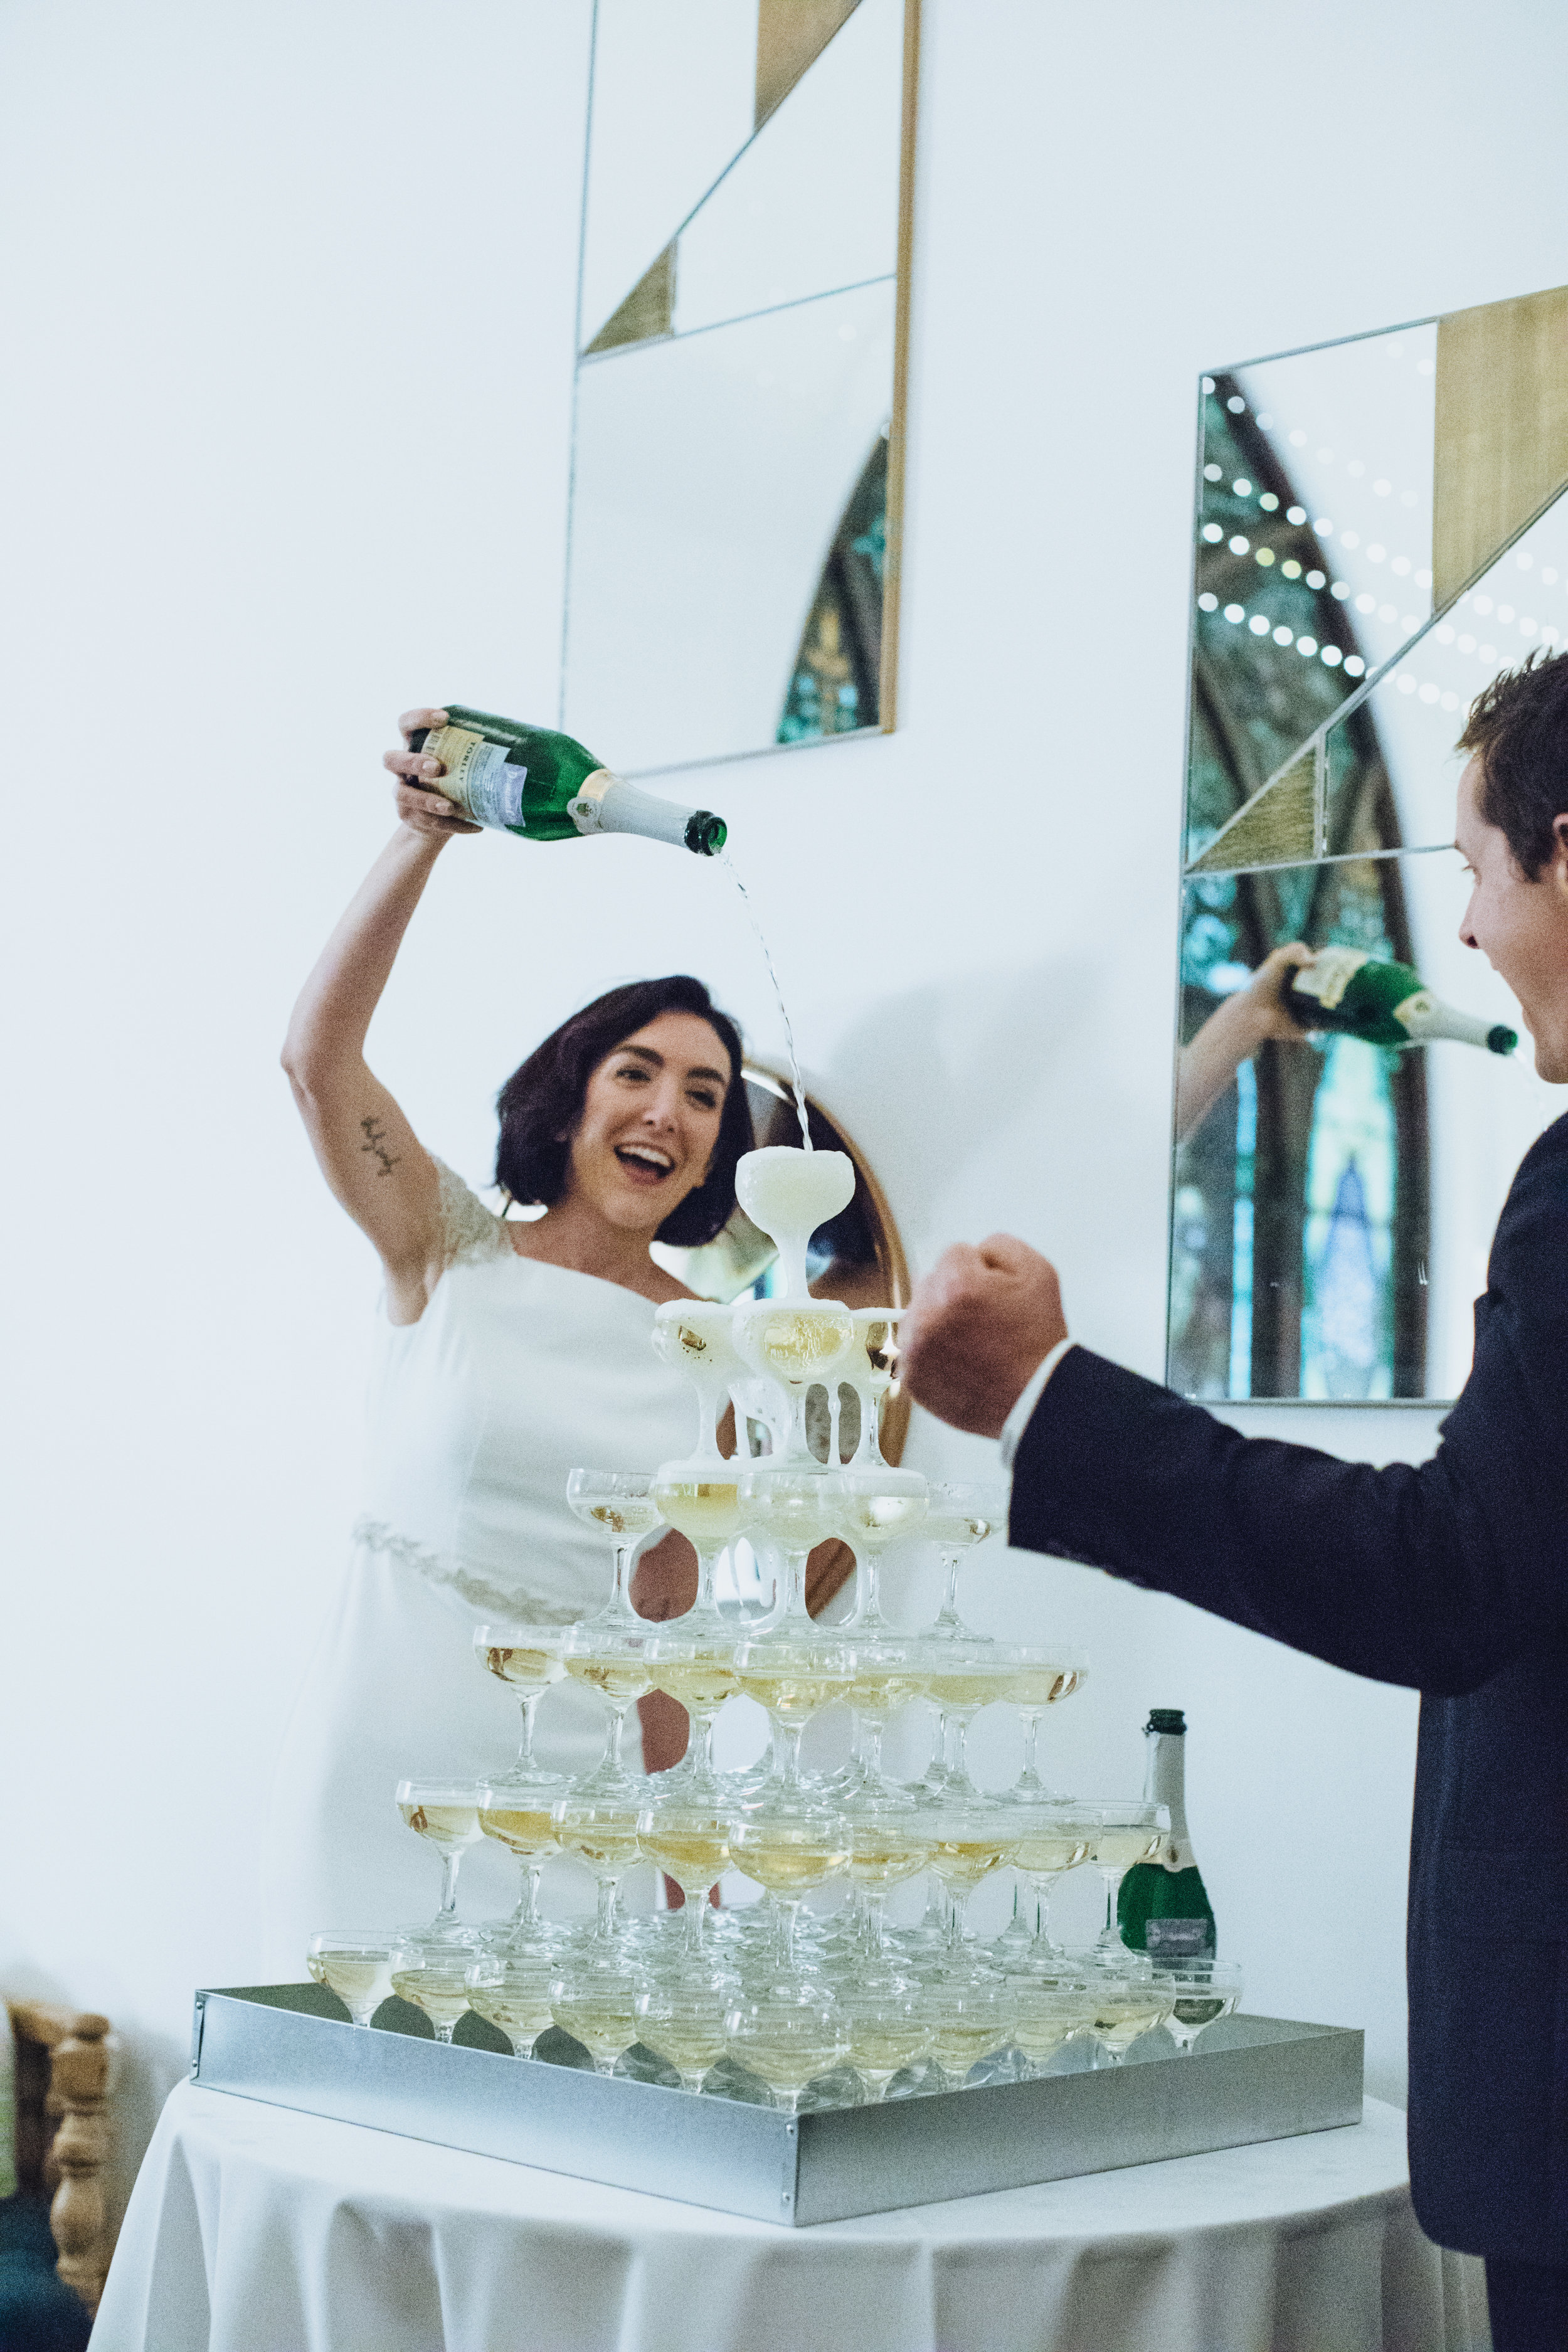 Whitney Adam's Wedding- Champagne Tower- Art & Soul Events, Photographer: Rad + In Love, The Ruby Street Wedding Venue